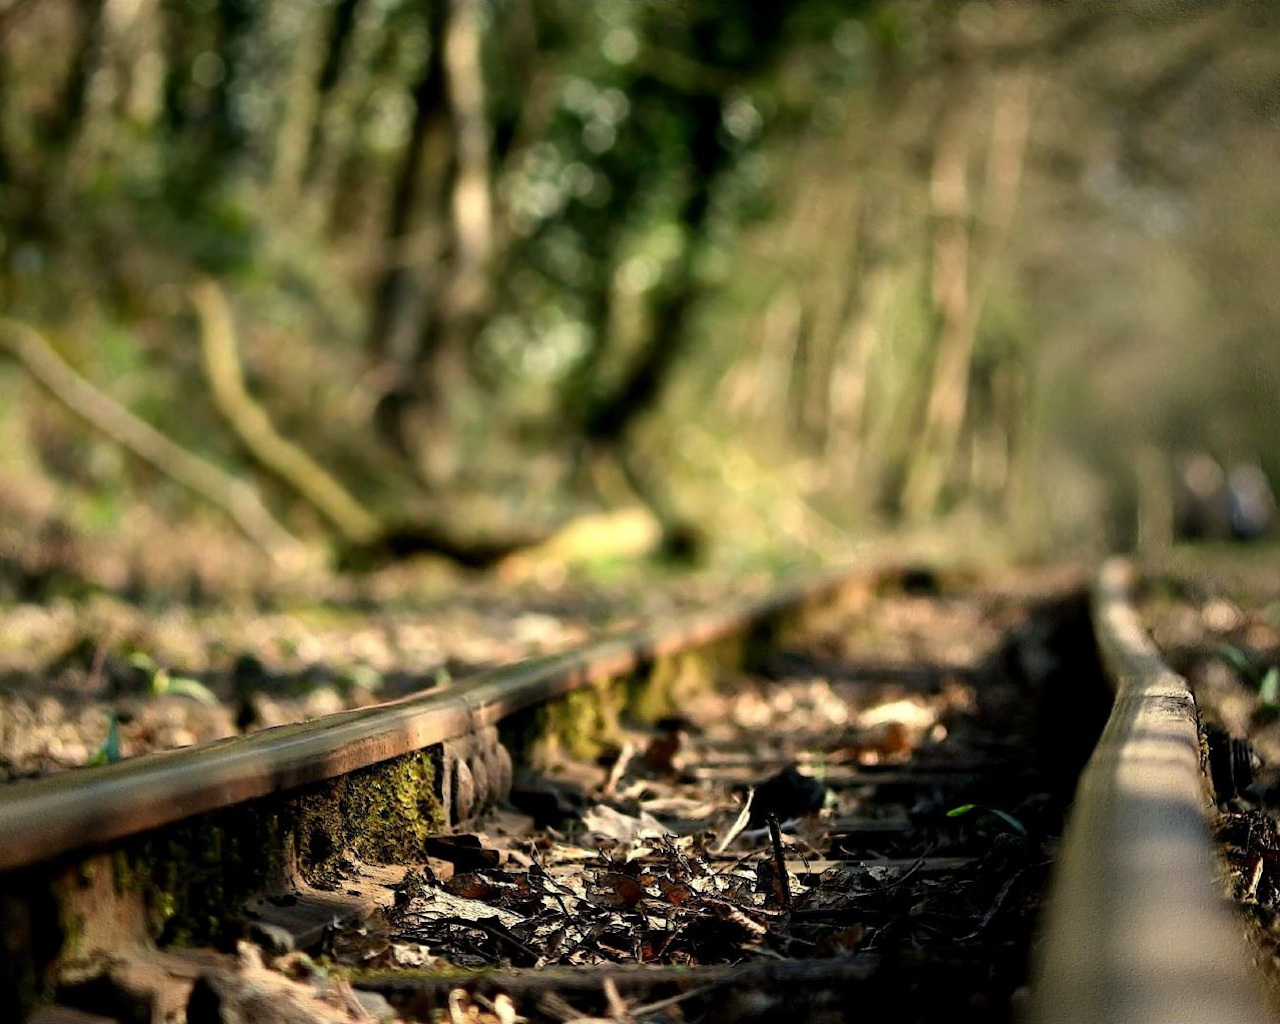 Rails - the old railway in the forest, wallpaper, picture